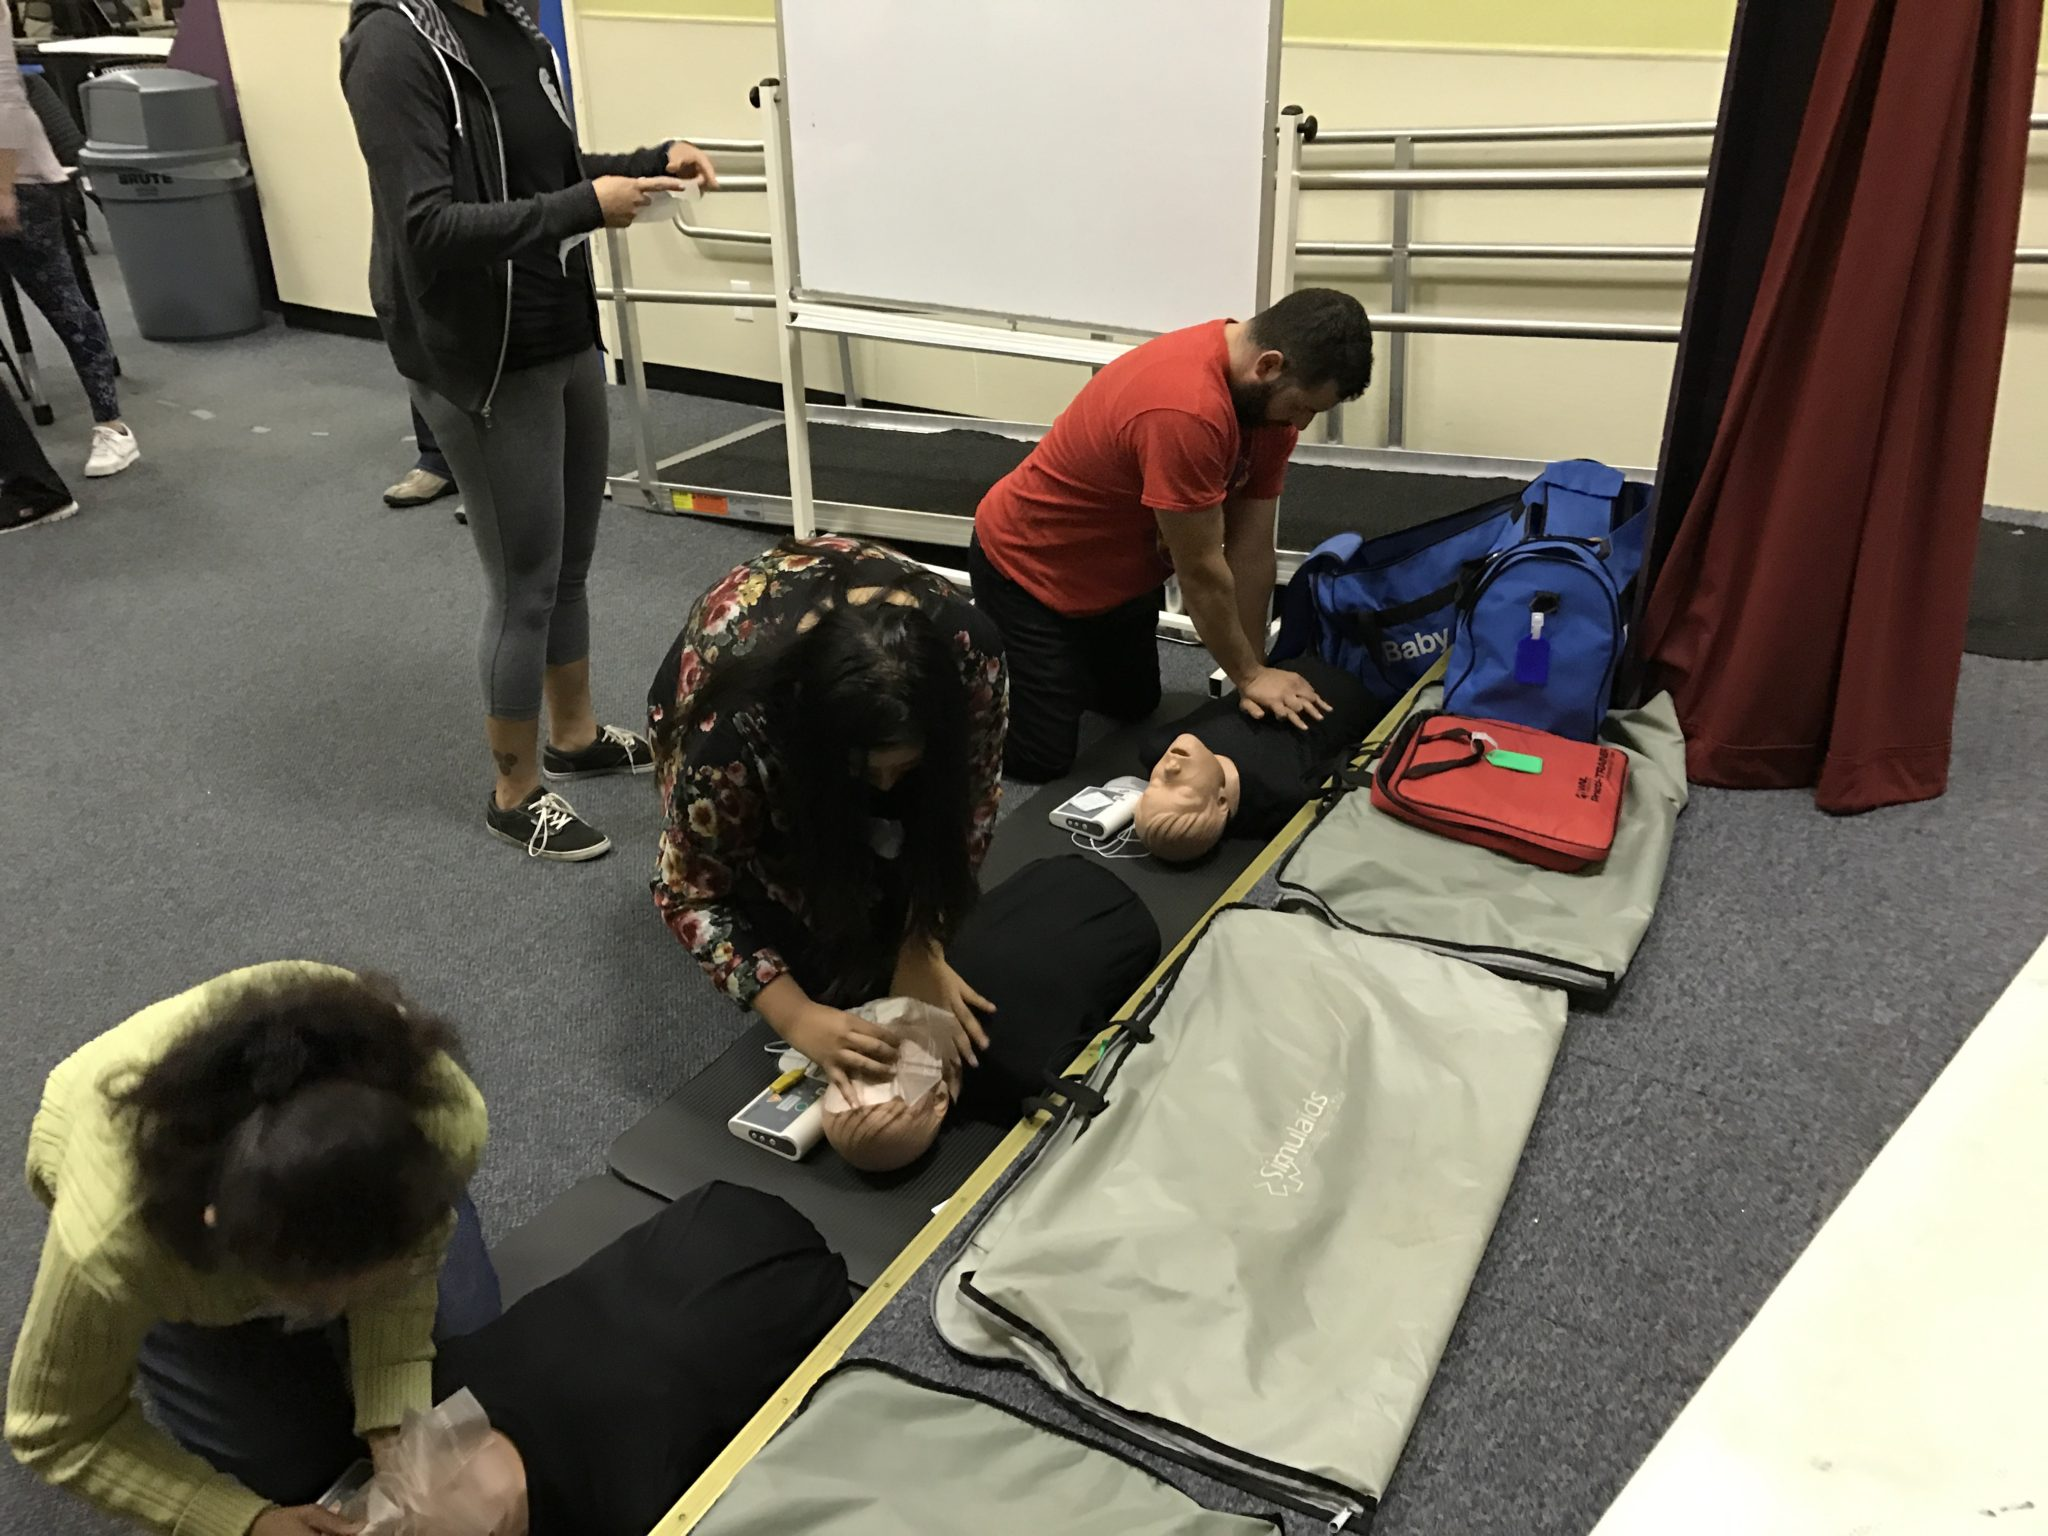 CPR at Navato Youth Center